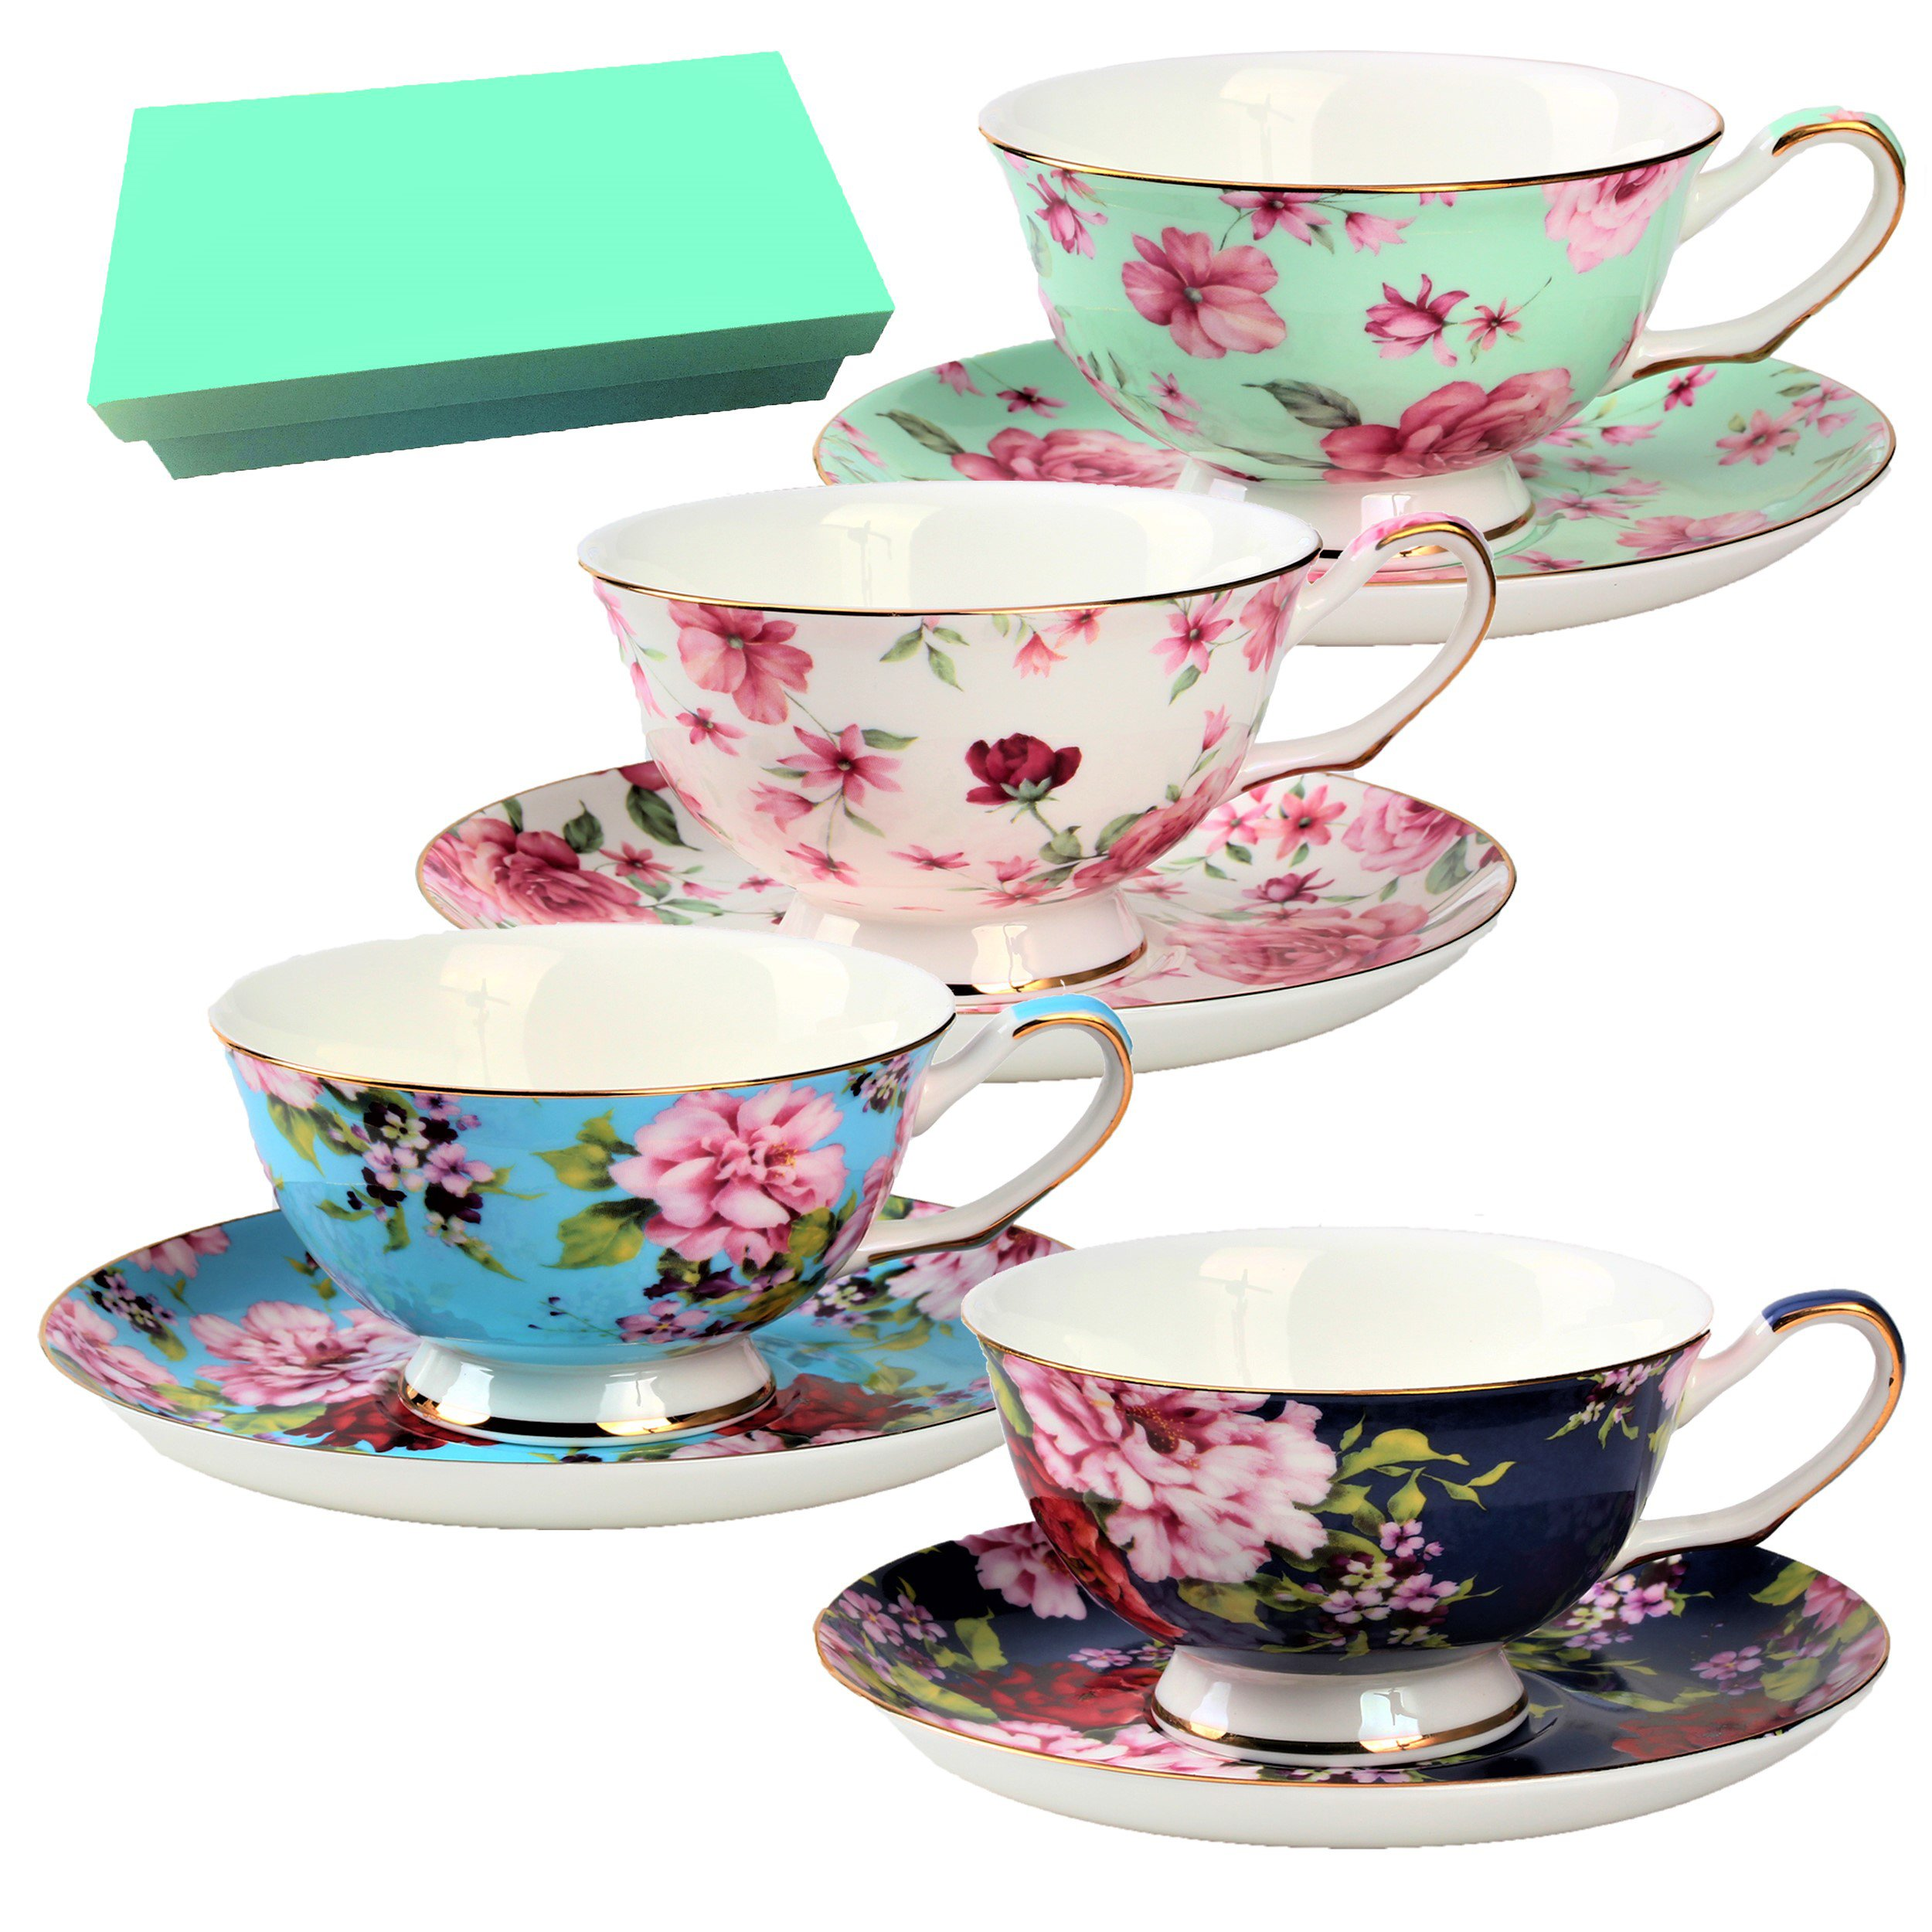 BTäT- Tea Cups, Tea Cups and Saucers Set of 4, Tea Set, Floral Tea Cups (7oz), Tea Cups and Saucers Set, Tea Set, Porcelain Tea Cups, Tea Cups for Tea Party, Rose Teacups, China Tea Cups (Bone China)